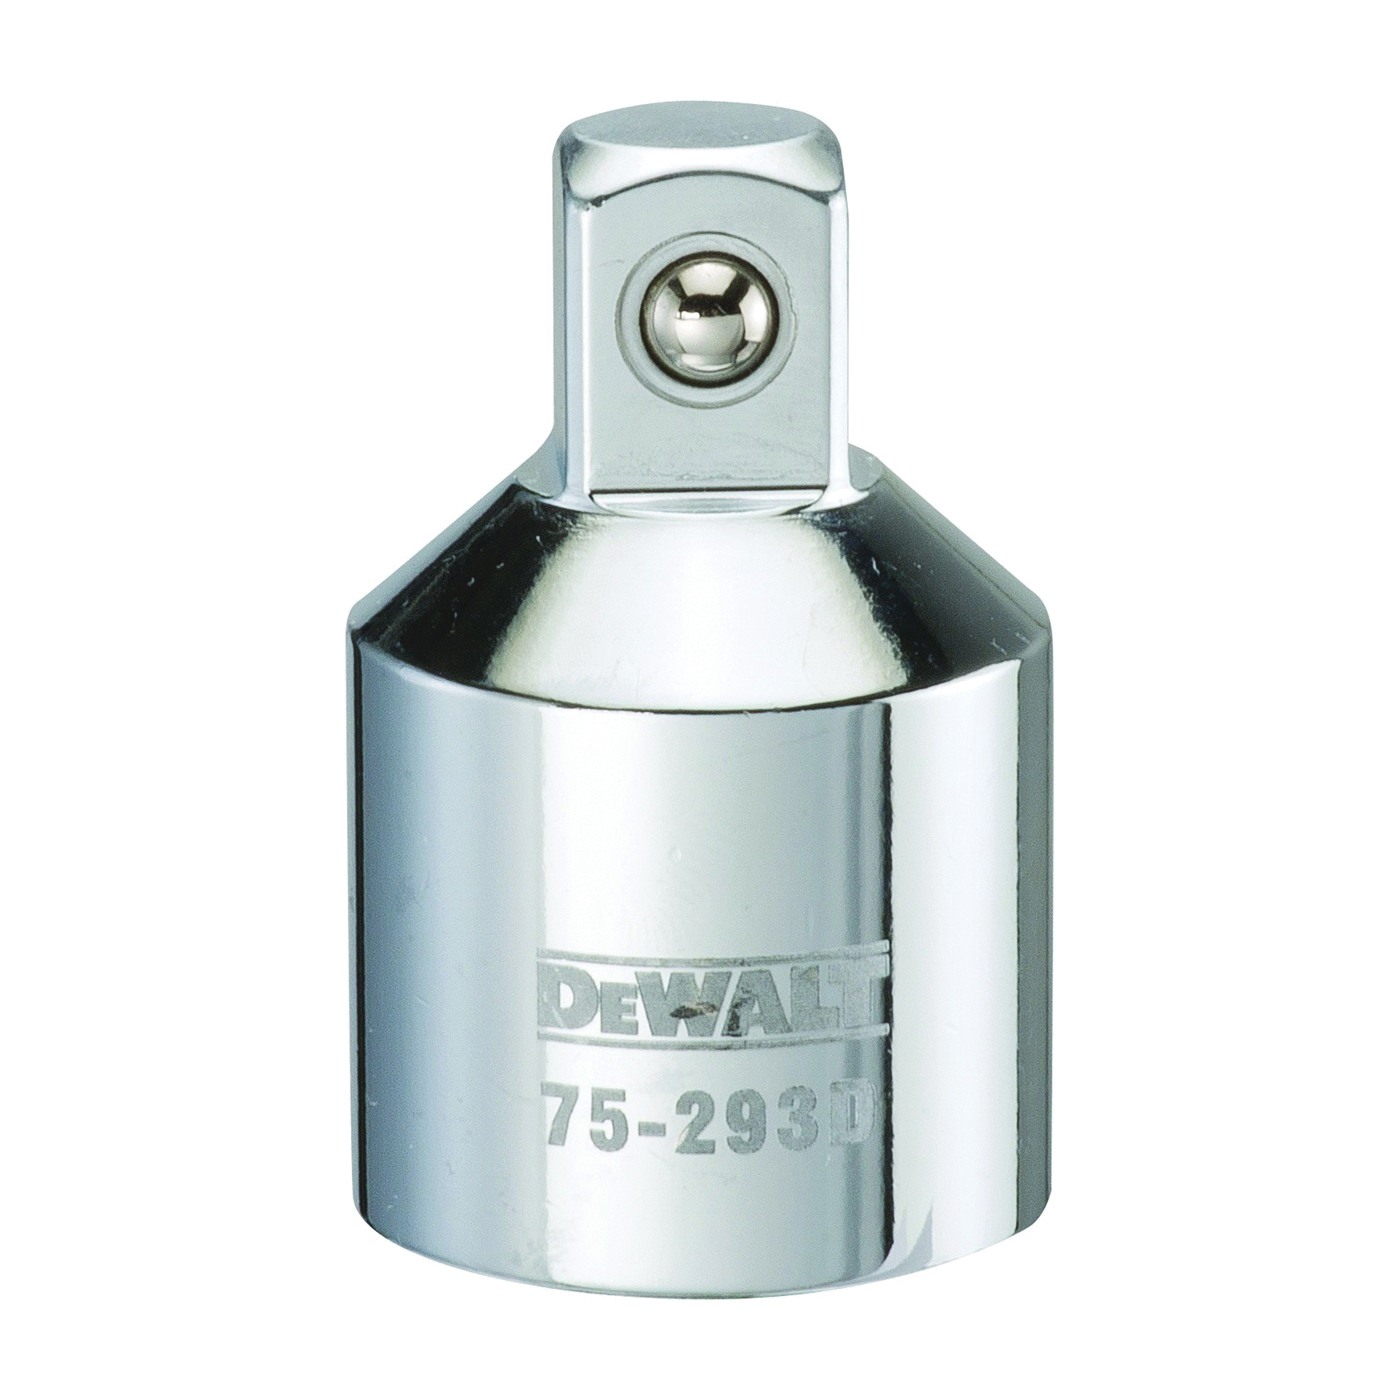 Picture of DeWALT DWMT75293OSP Reducing Adapter, 3/4 in Drive, Female Drive, 1/2 in Output Drive, Male Output Drive, Polished